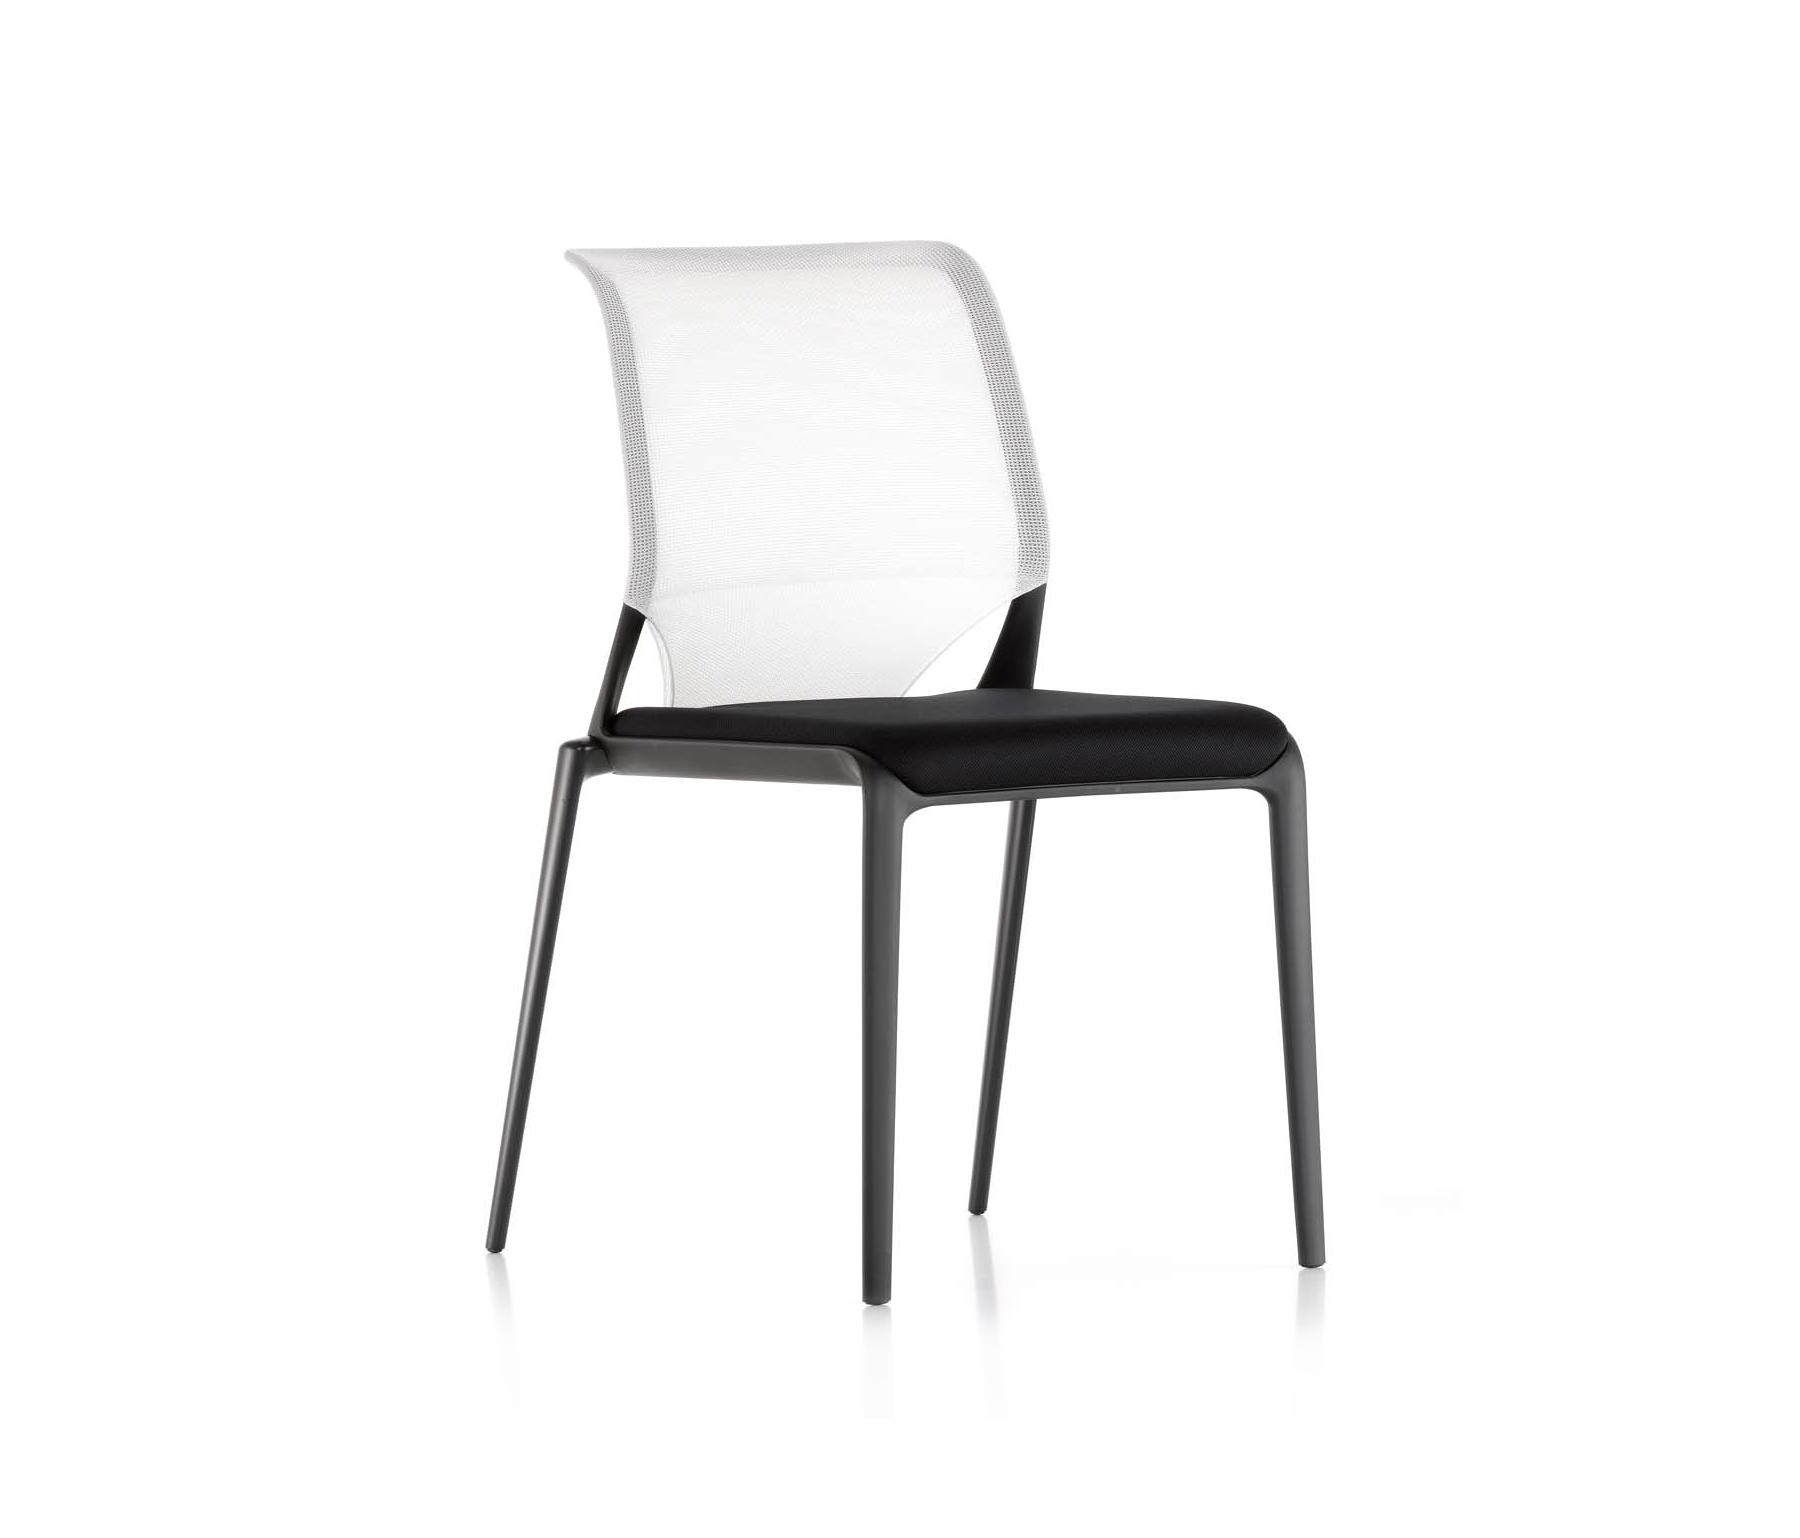 chaises vitra best belleville chair wood chaise vitra with chaises vitra elegant eames plastic. Black Bedroom Furniture Sets. Home Design Ideas